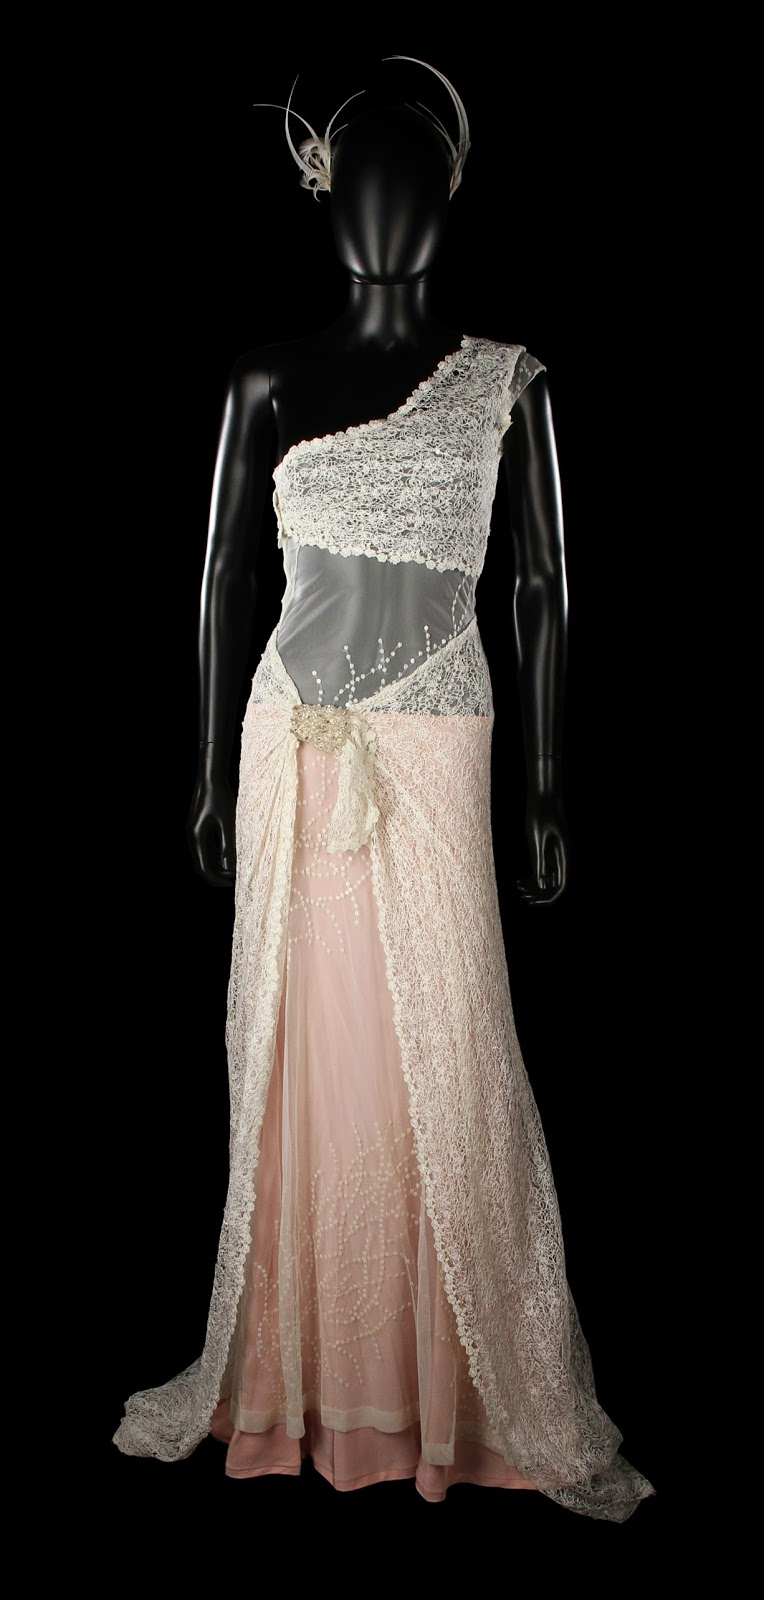 Satchel: Keira Knightley Juliet's Wedding Dress From Love